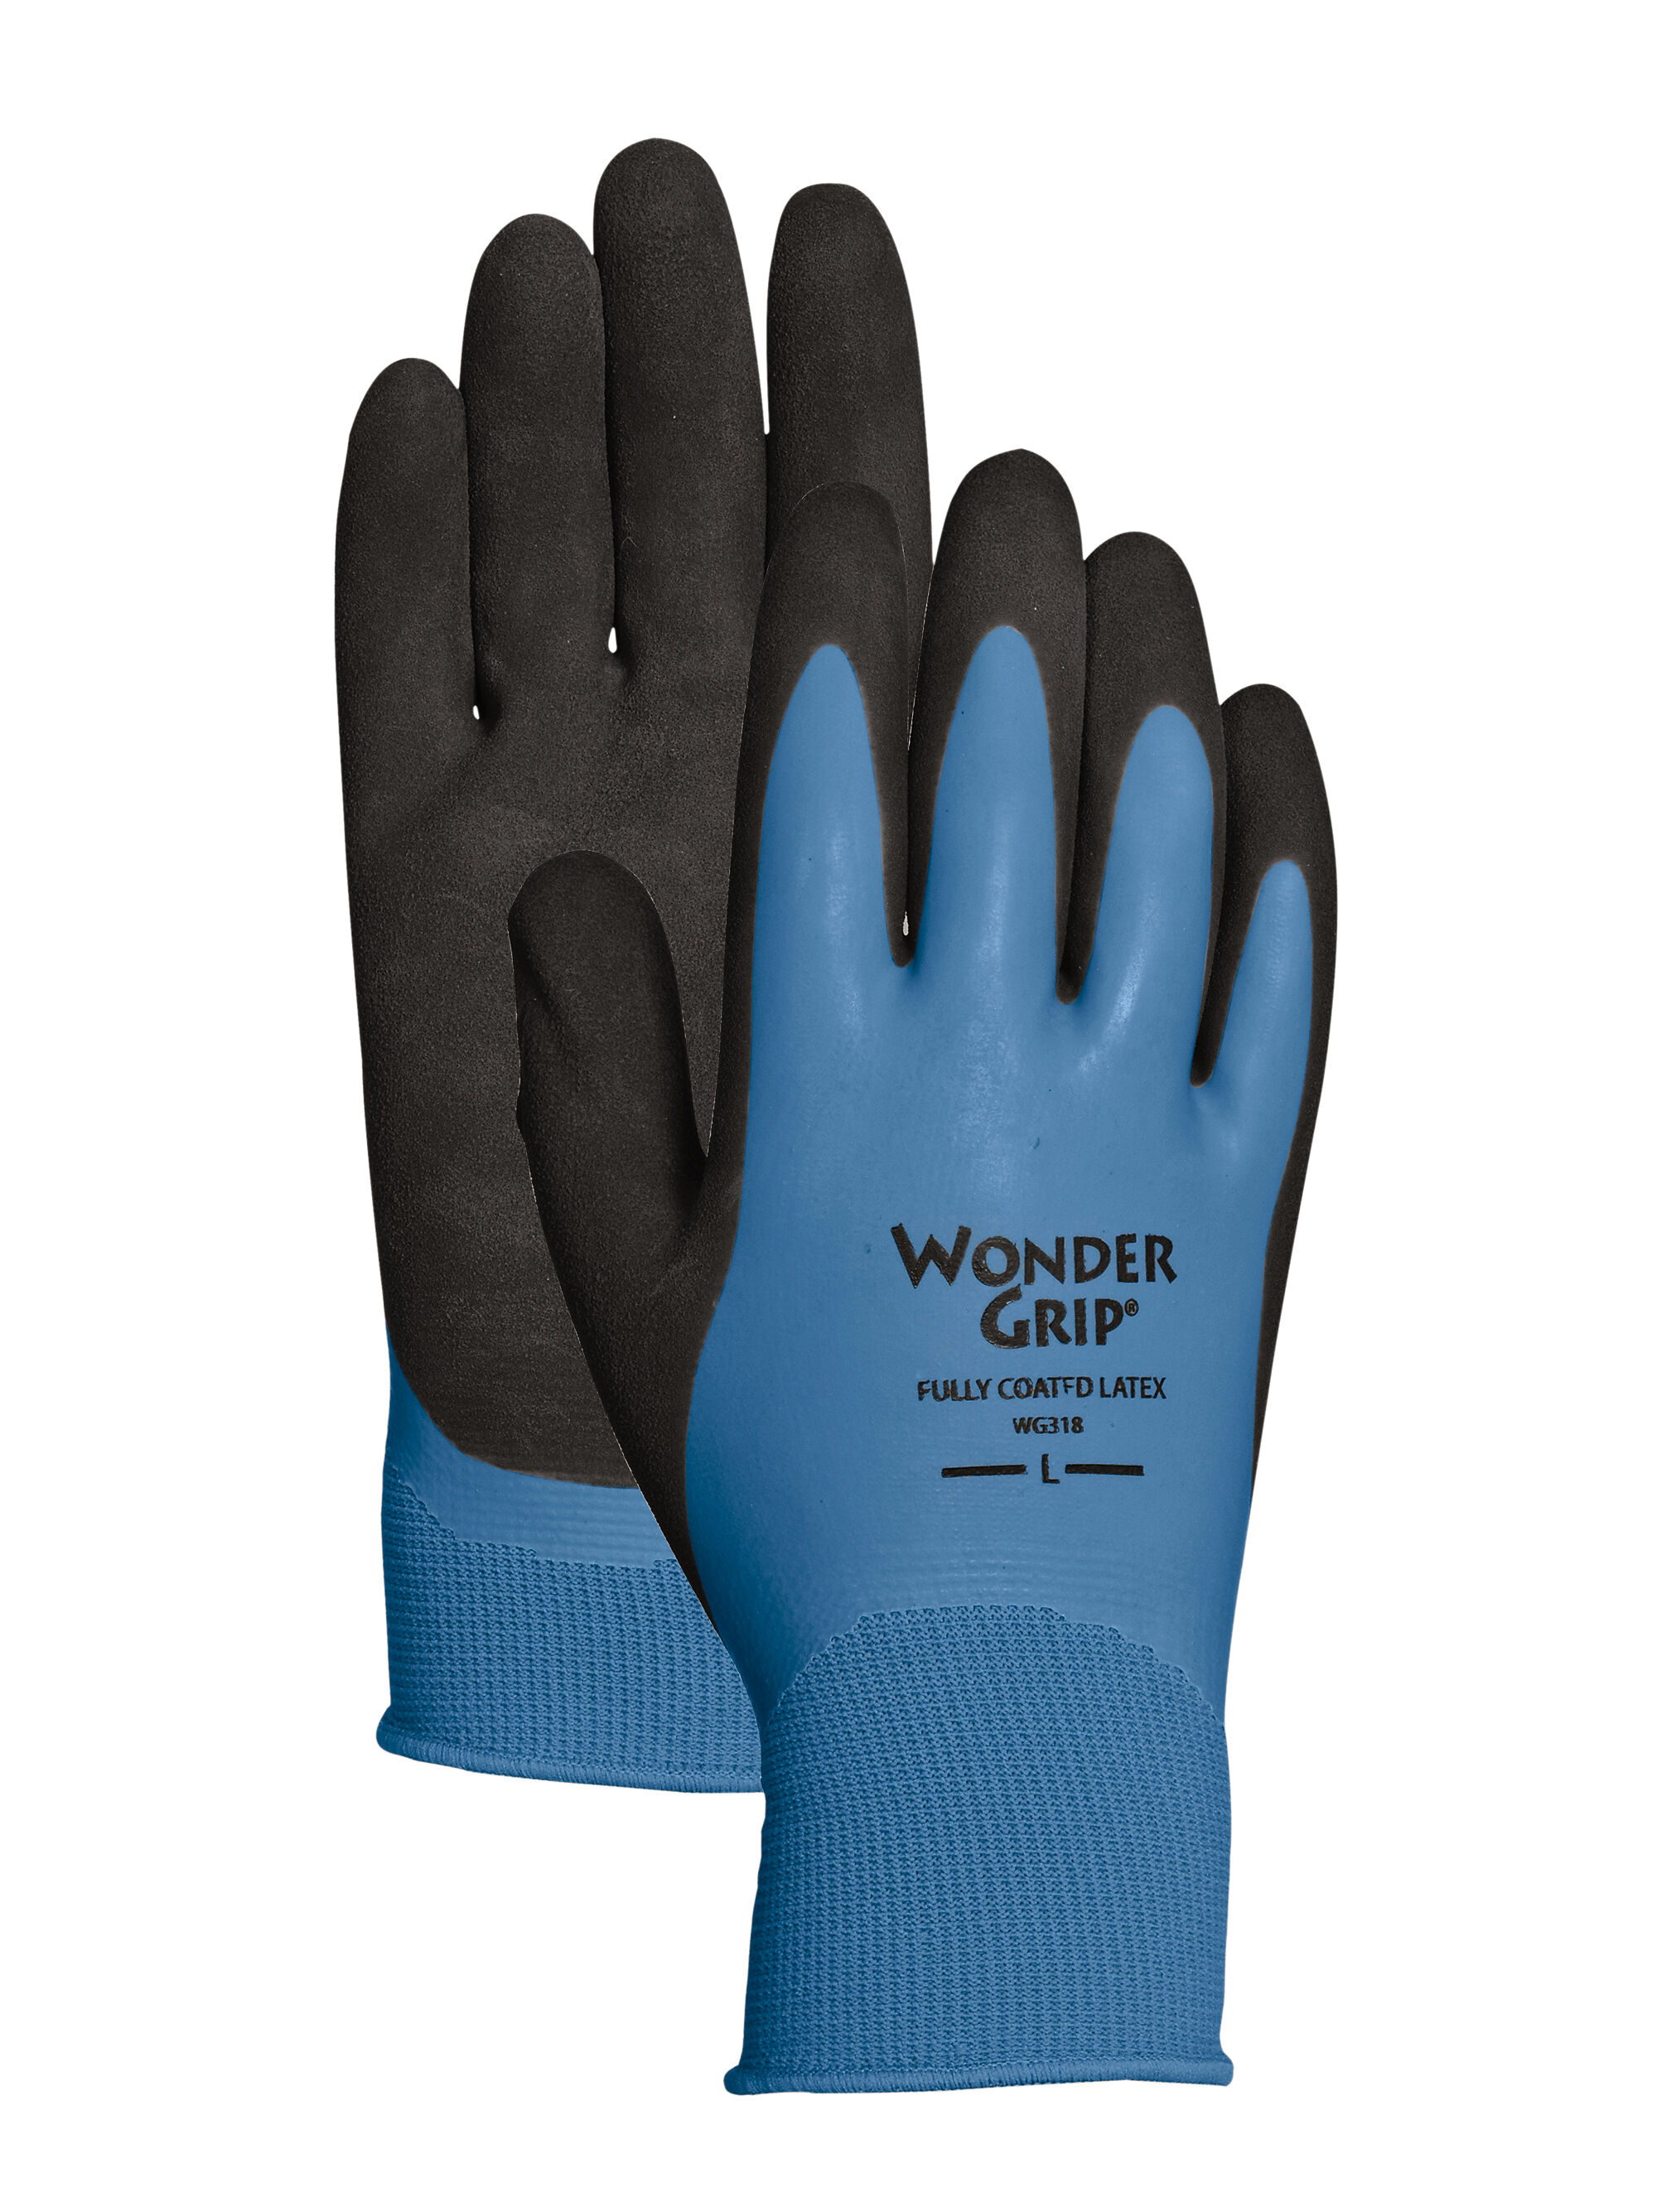 Black gardening gloves - Wonder Grip 174 Waterproof Gloves